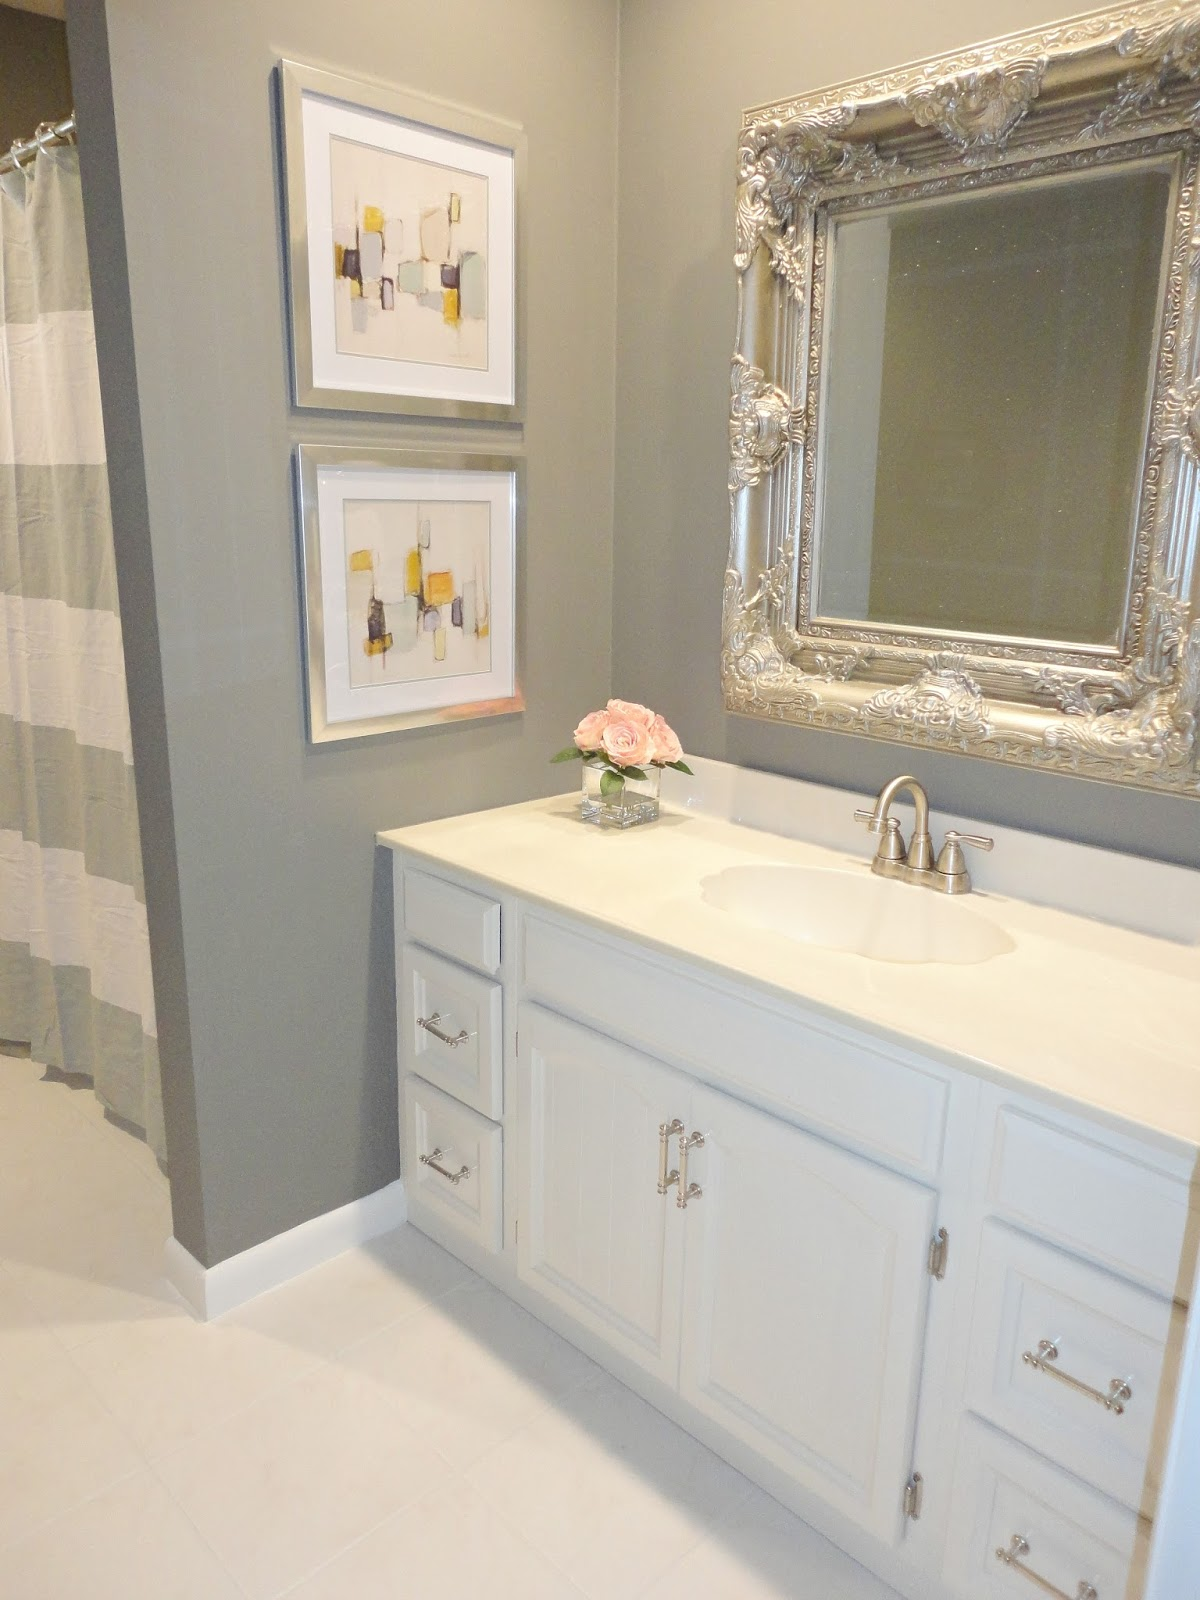 LiveLoveDIY DIY Bathroom Remodel On A Budget - How to completely remodel a bathroom